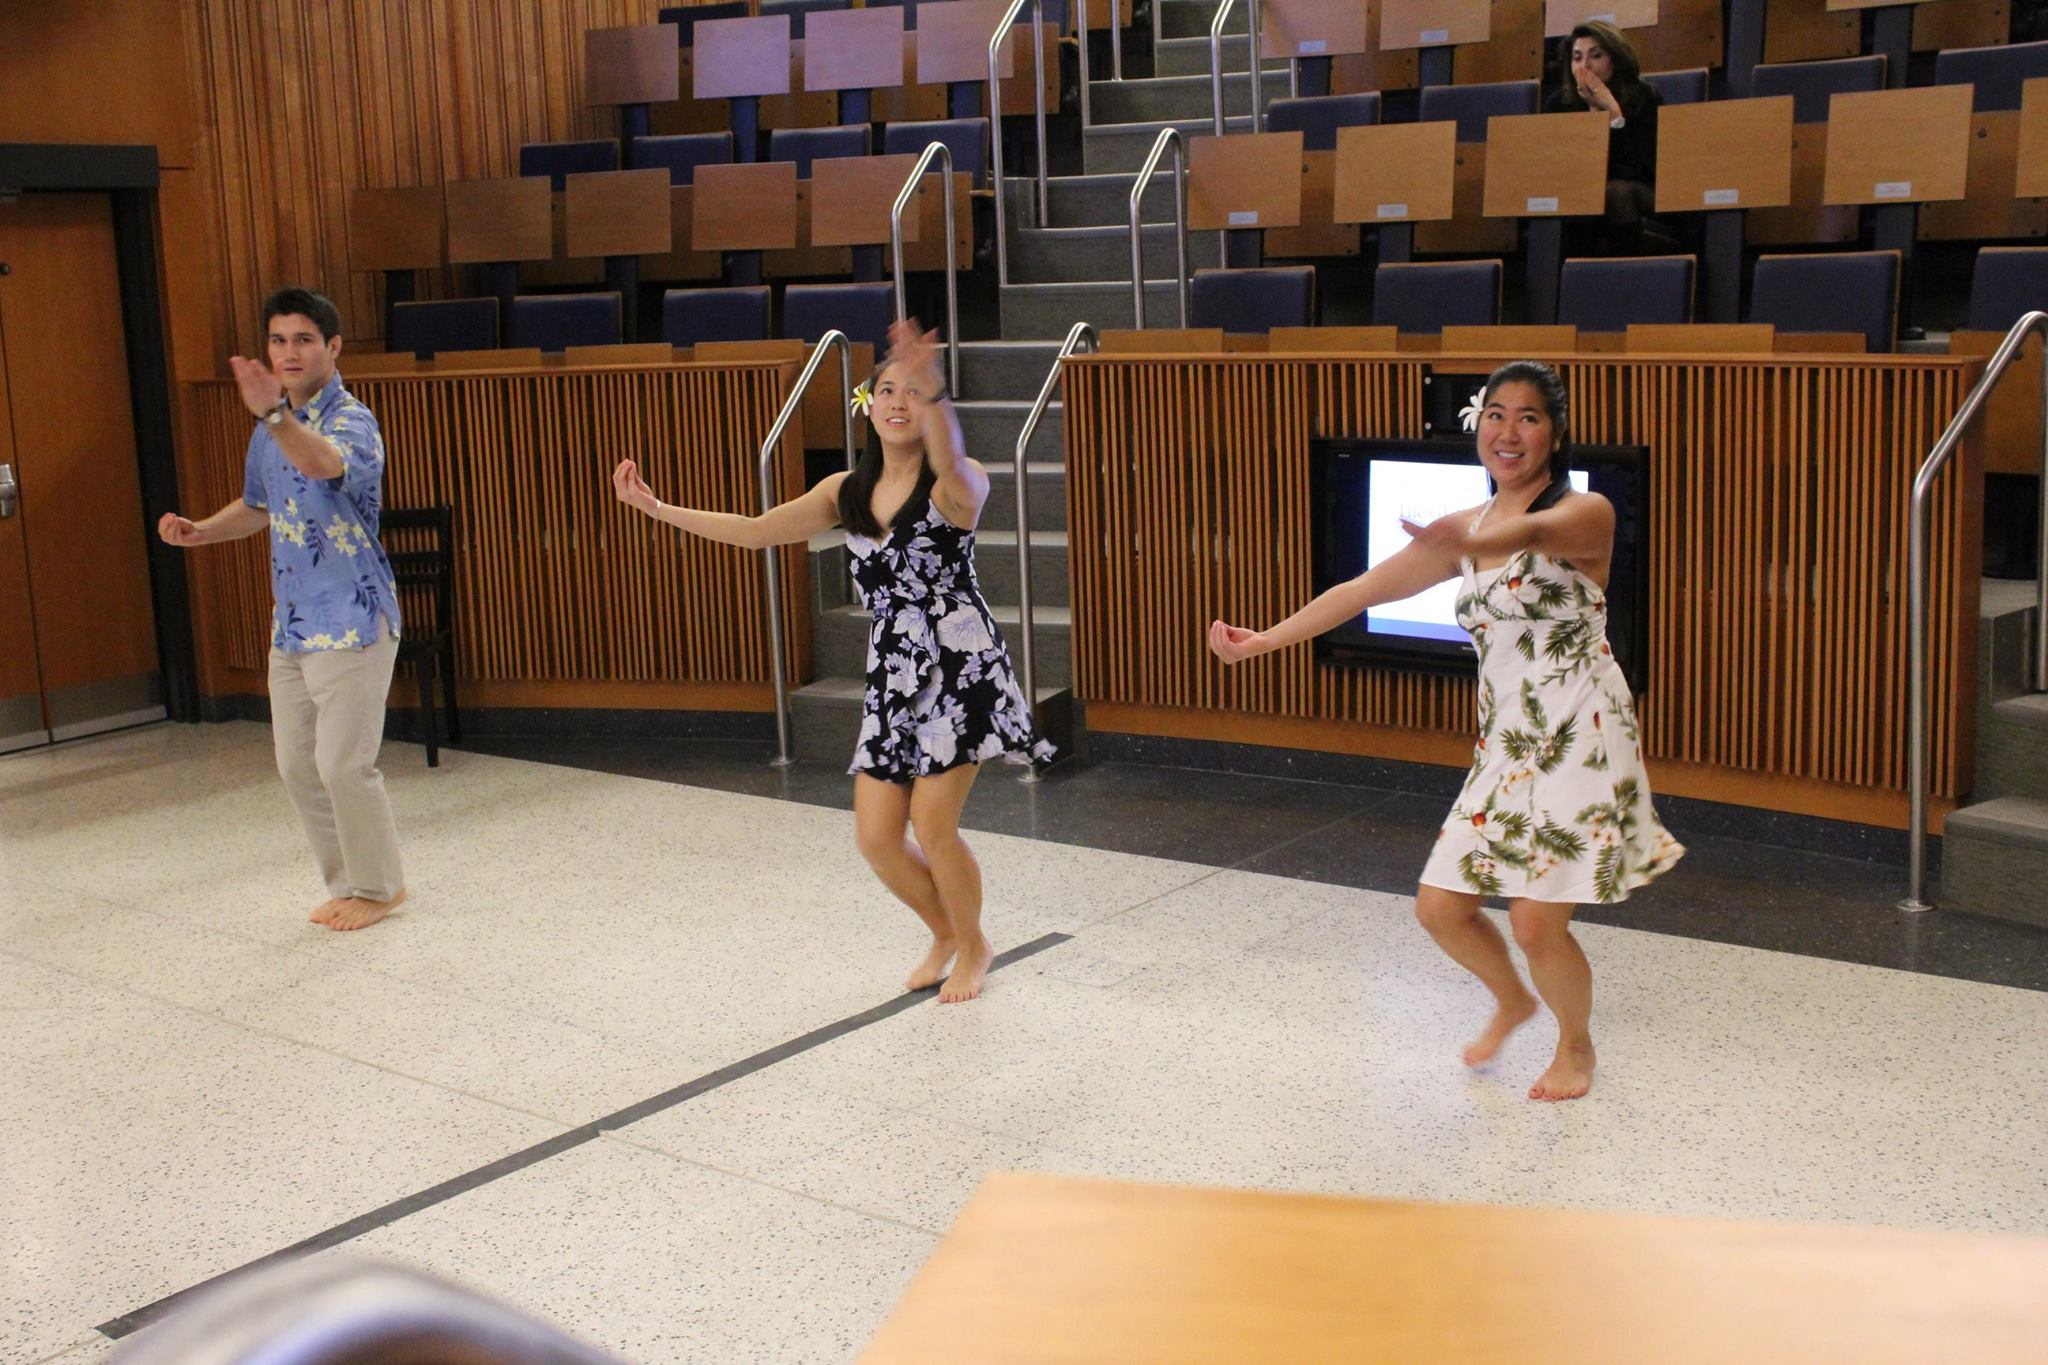 Brett Will (M2021), Kellie Wo (M2021), and Callie Takahashi (M2020) perform hula to He Mele No Lilo.